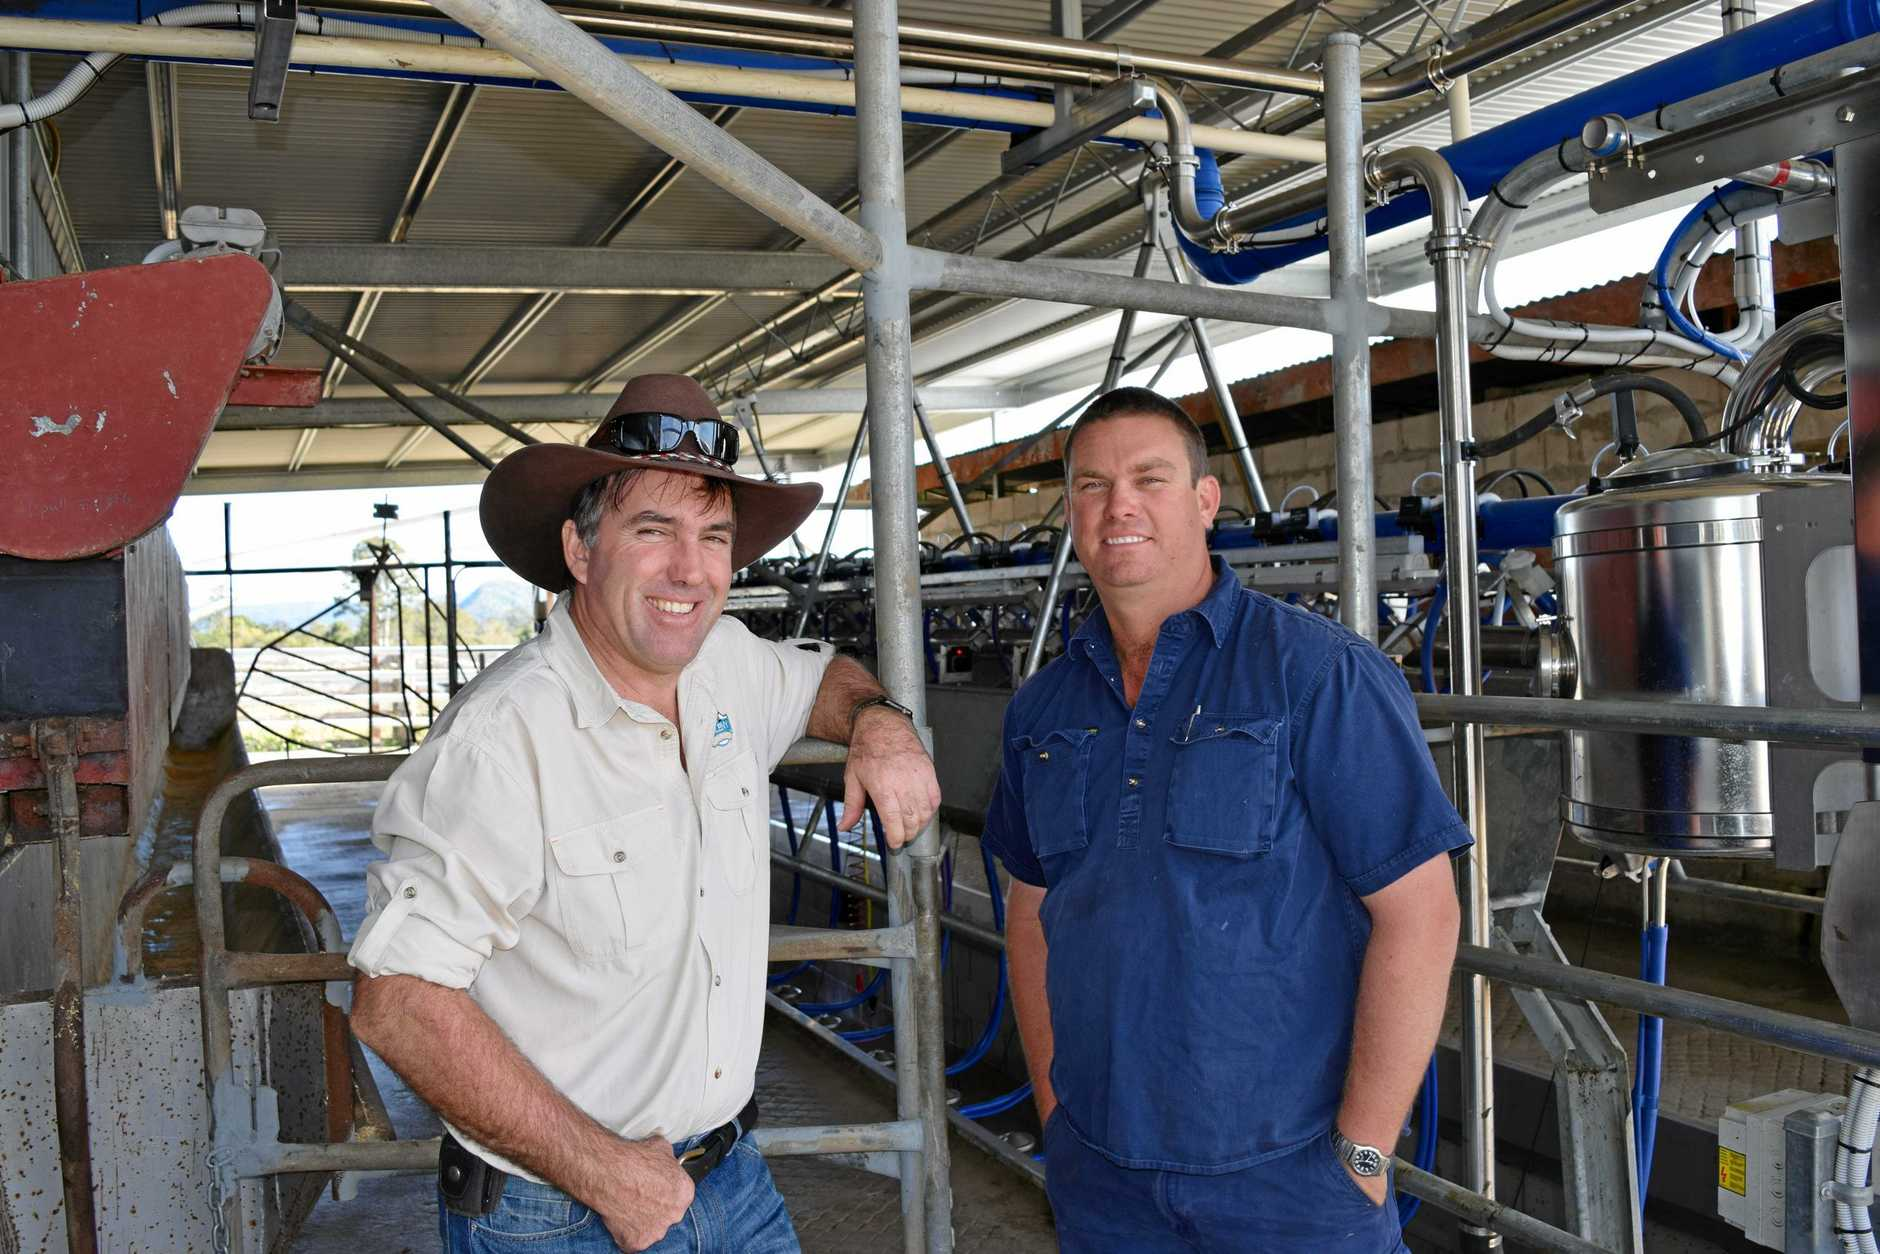 Maleny Dairies' Ross Hopper (left) and local farmer Jason Rozynski have partnered up to boost the local dairy industry, 5 July 2016